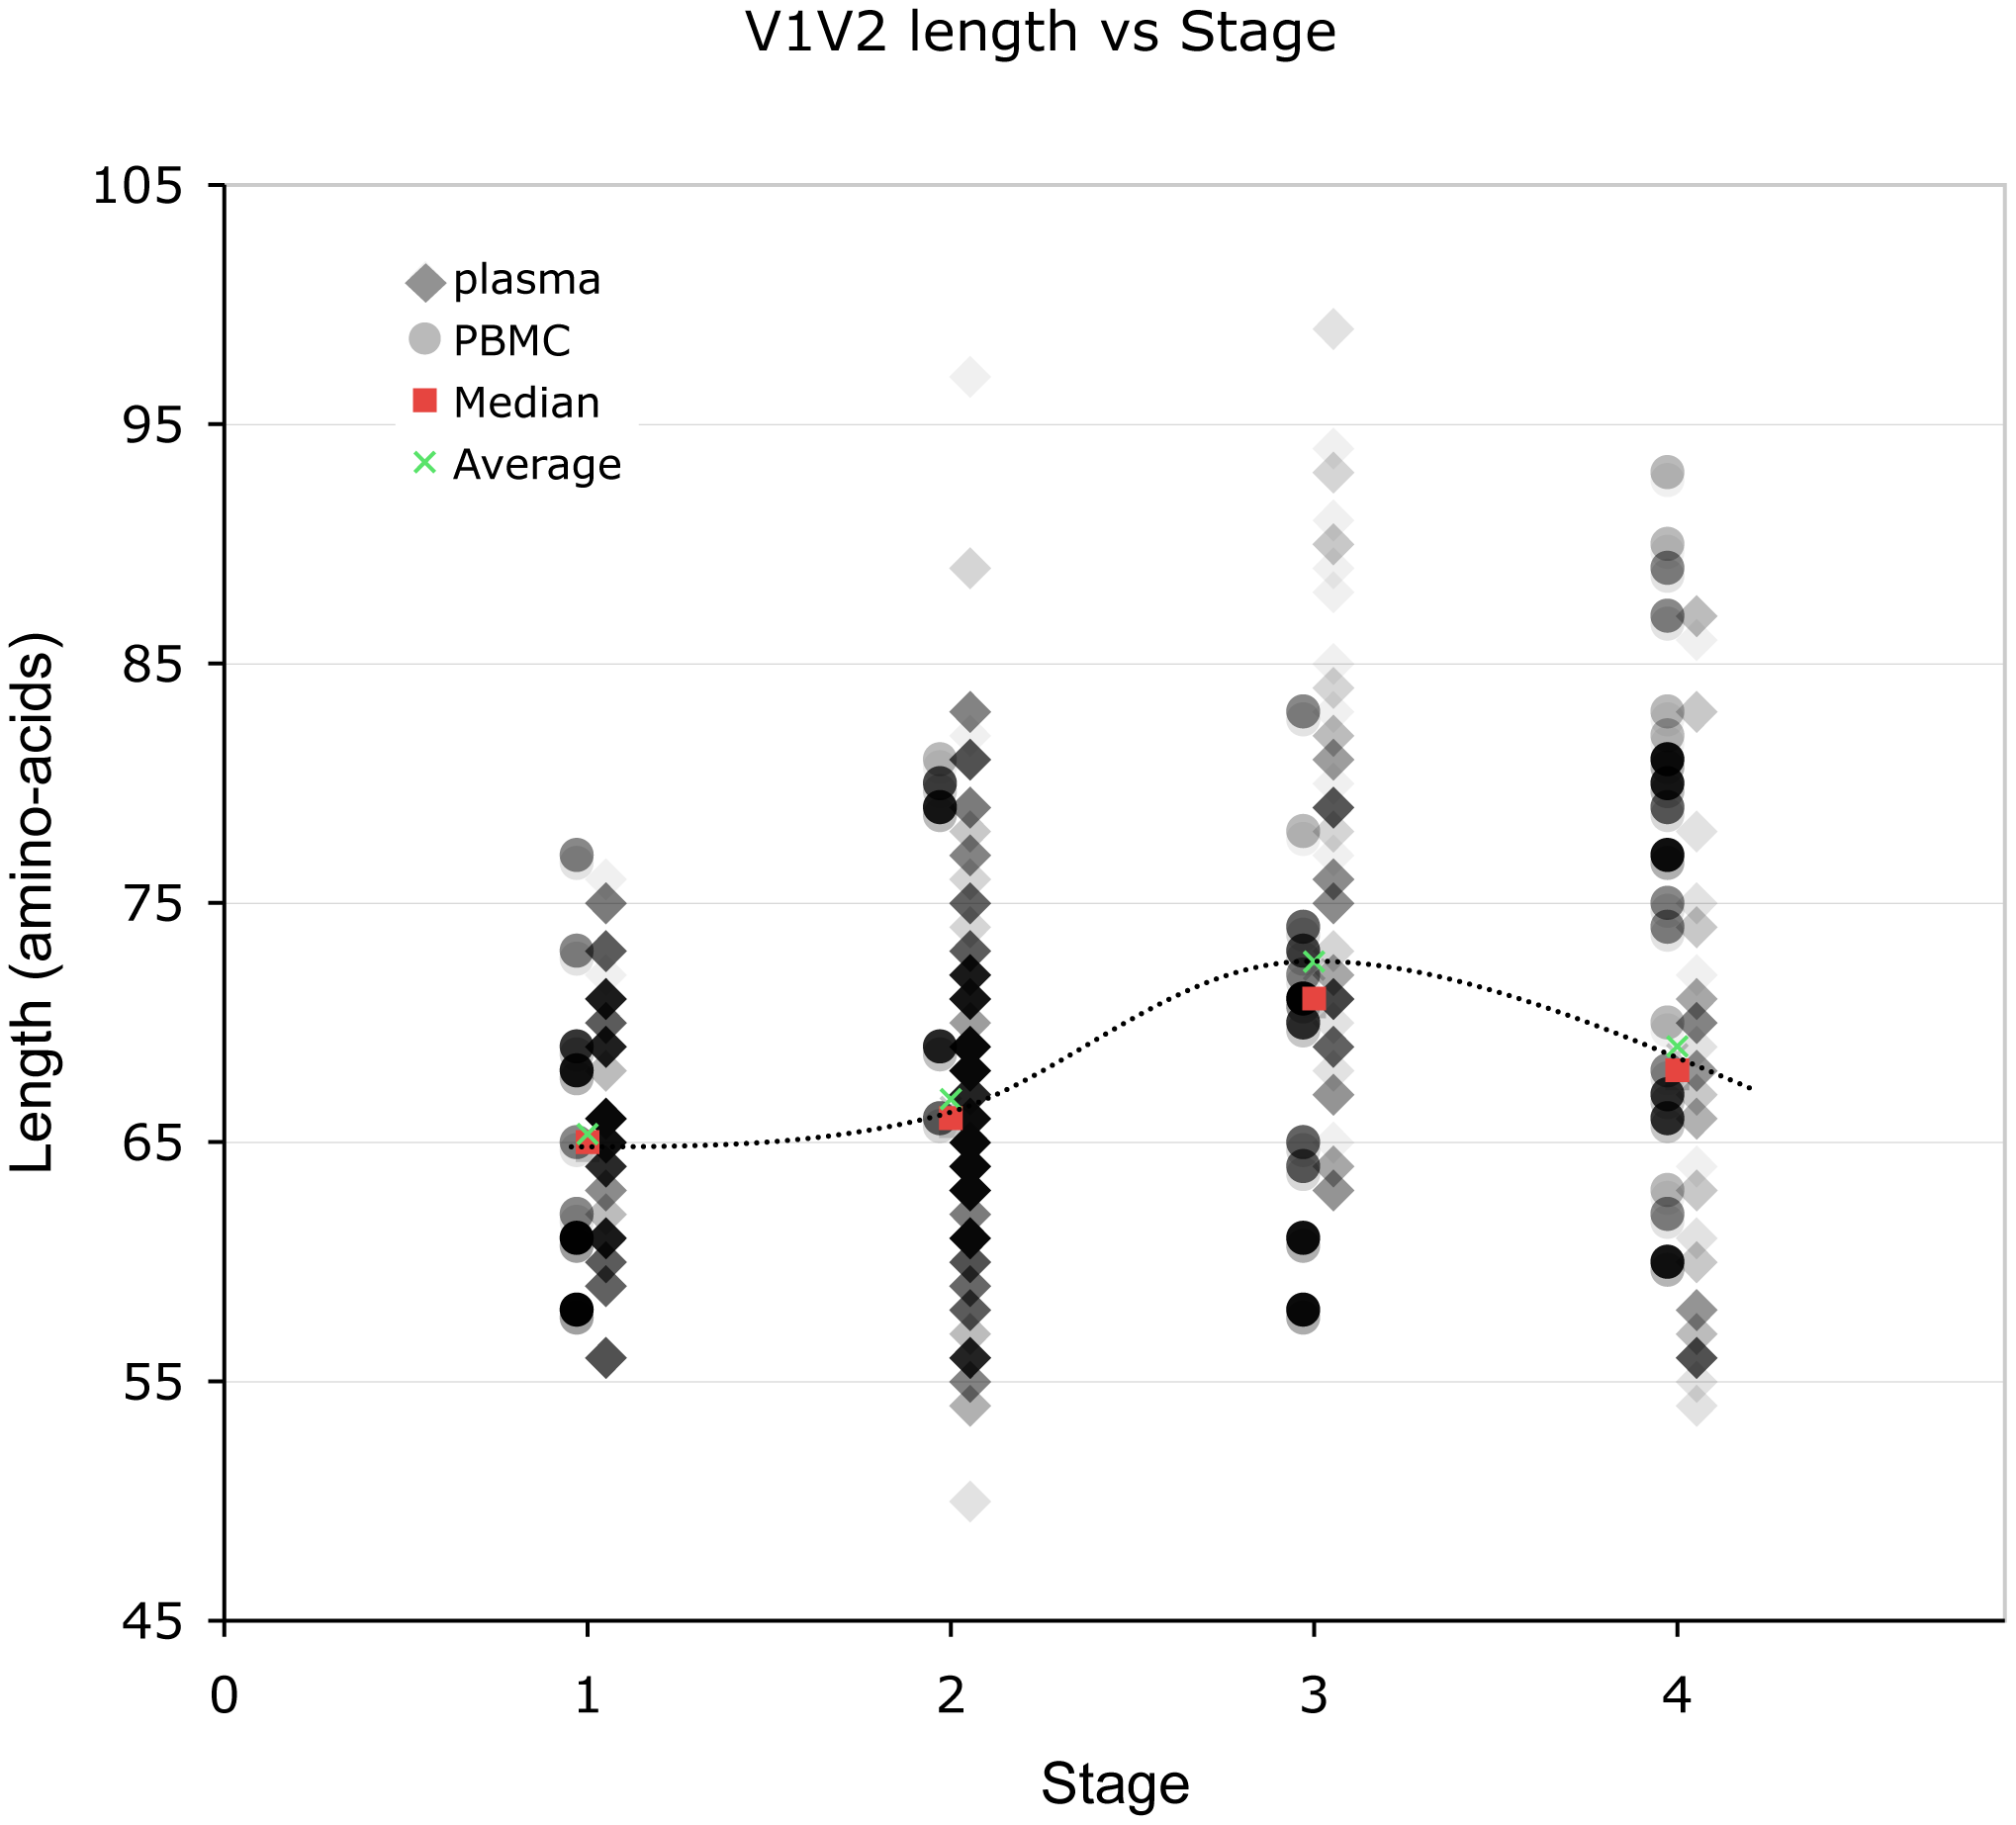 Correlation between stage of illness and V1V2 length.